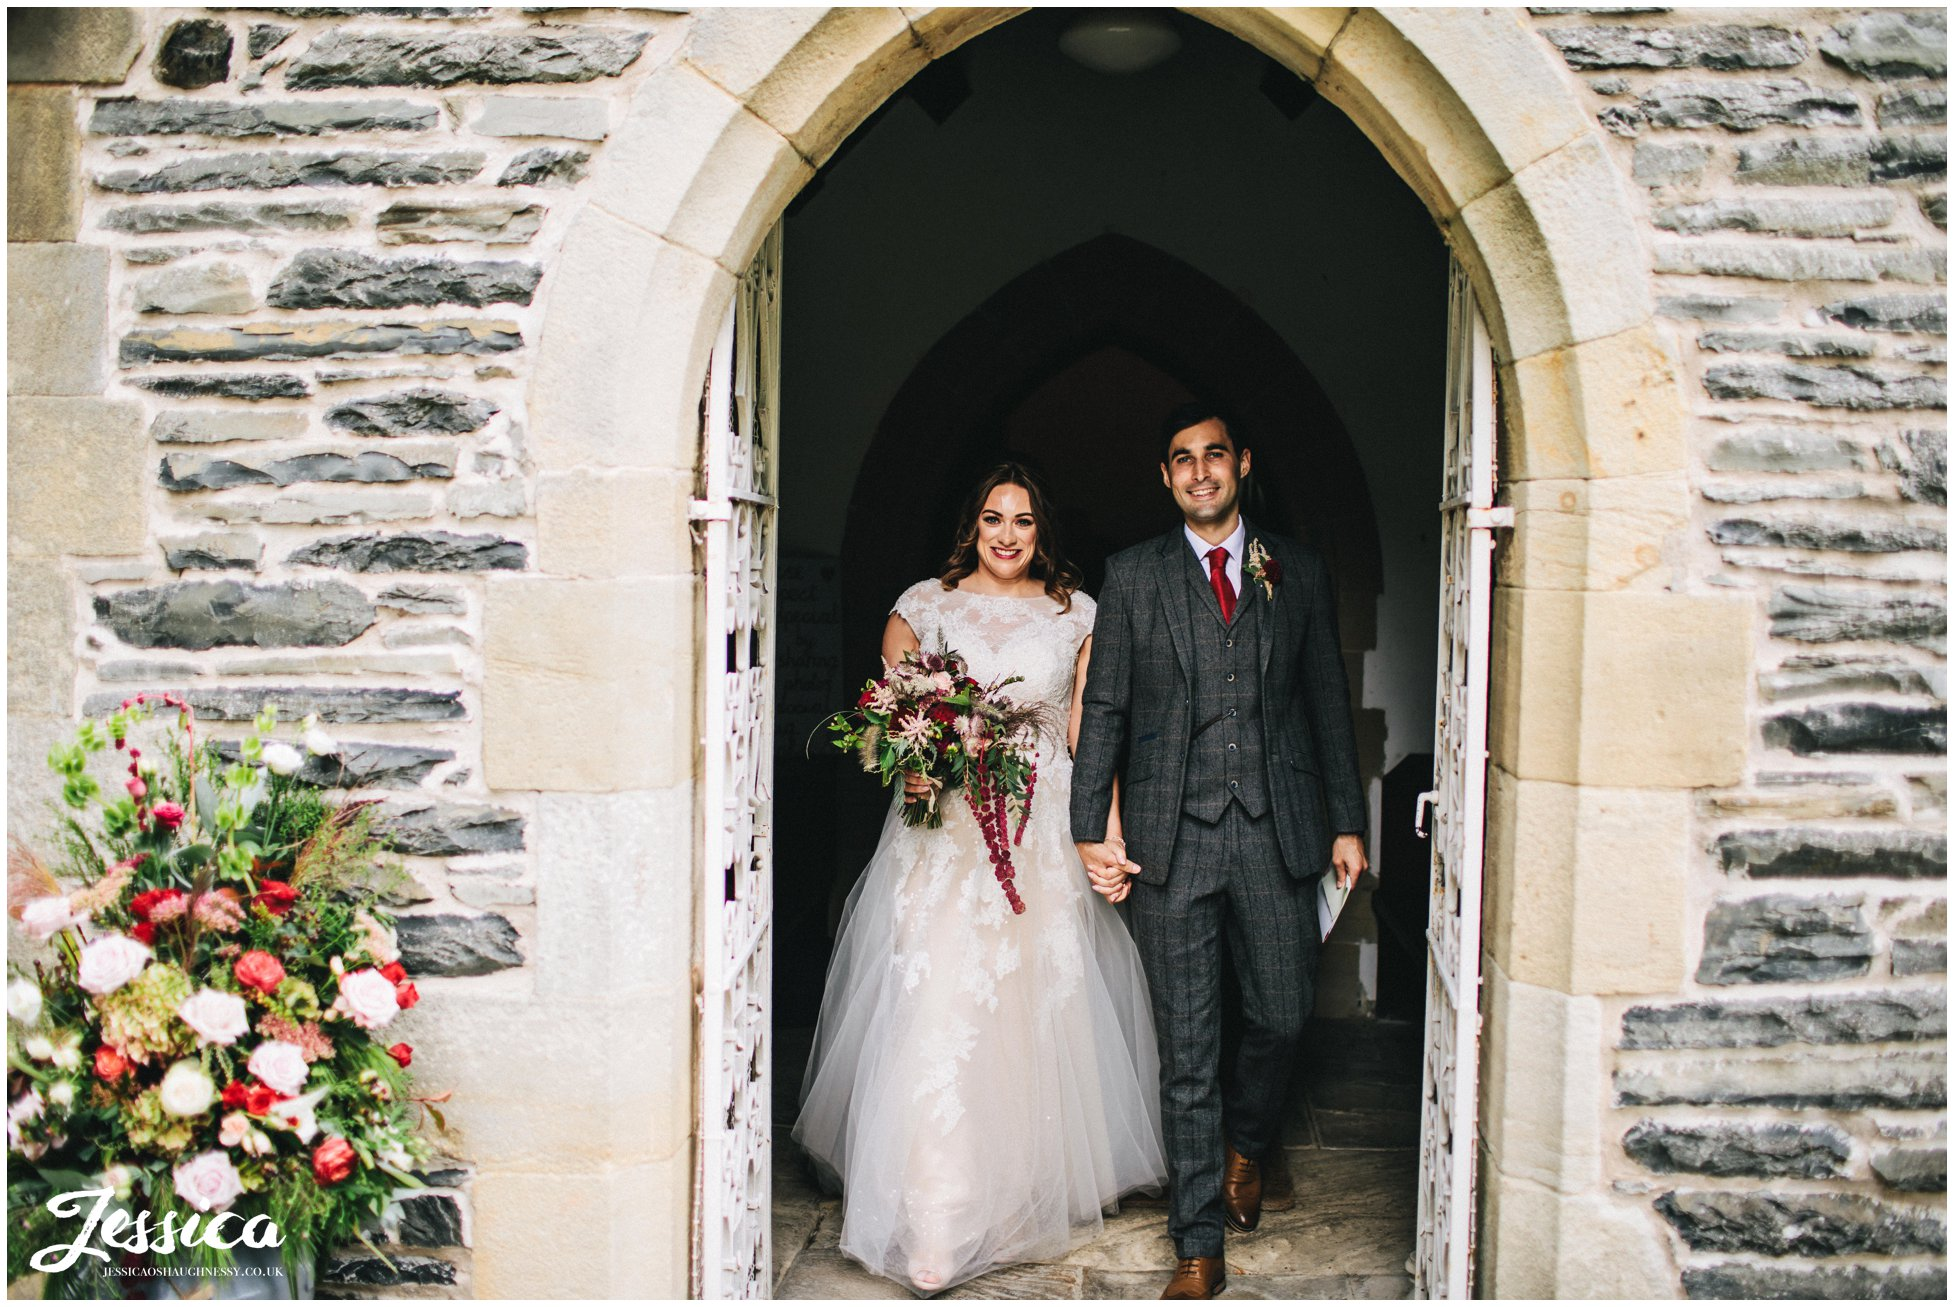 the couple exit Llantysilio church in north wales